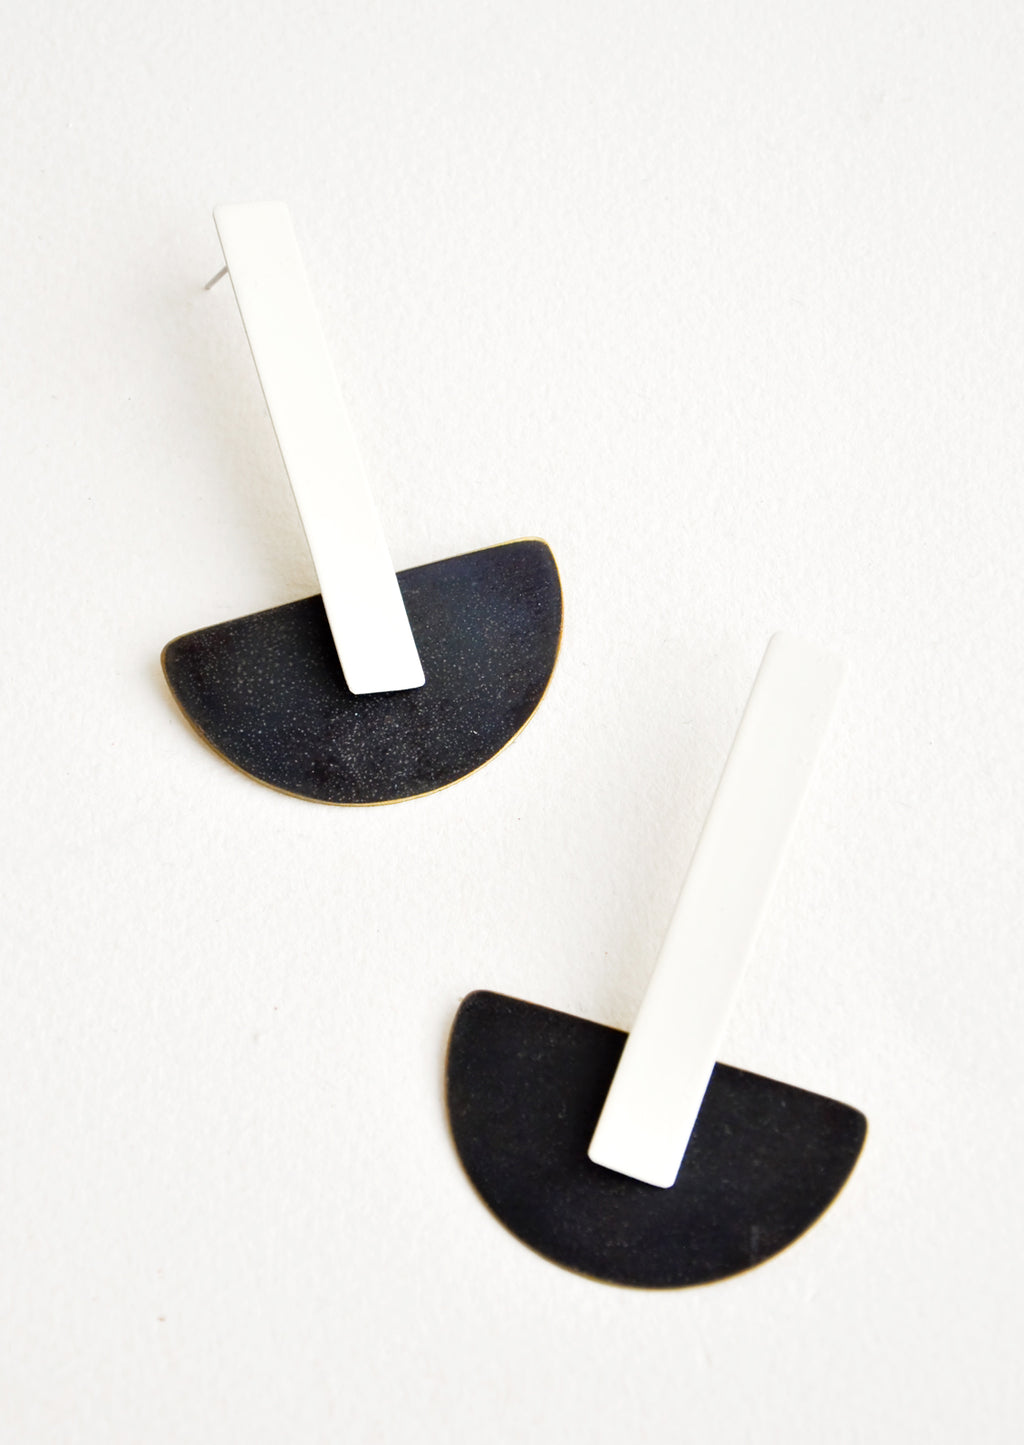 Cream / Black: Schooner Earrings in Cream / Black - LEIF